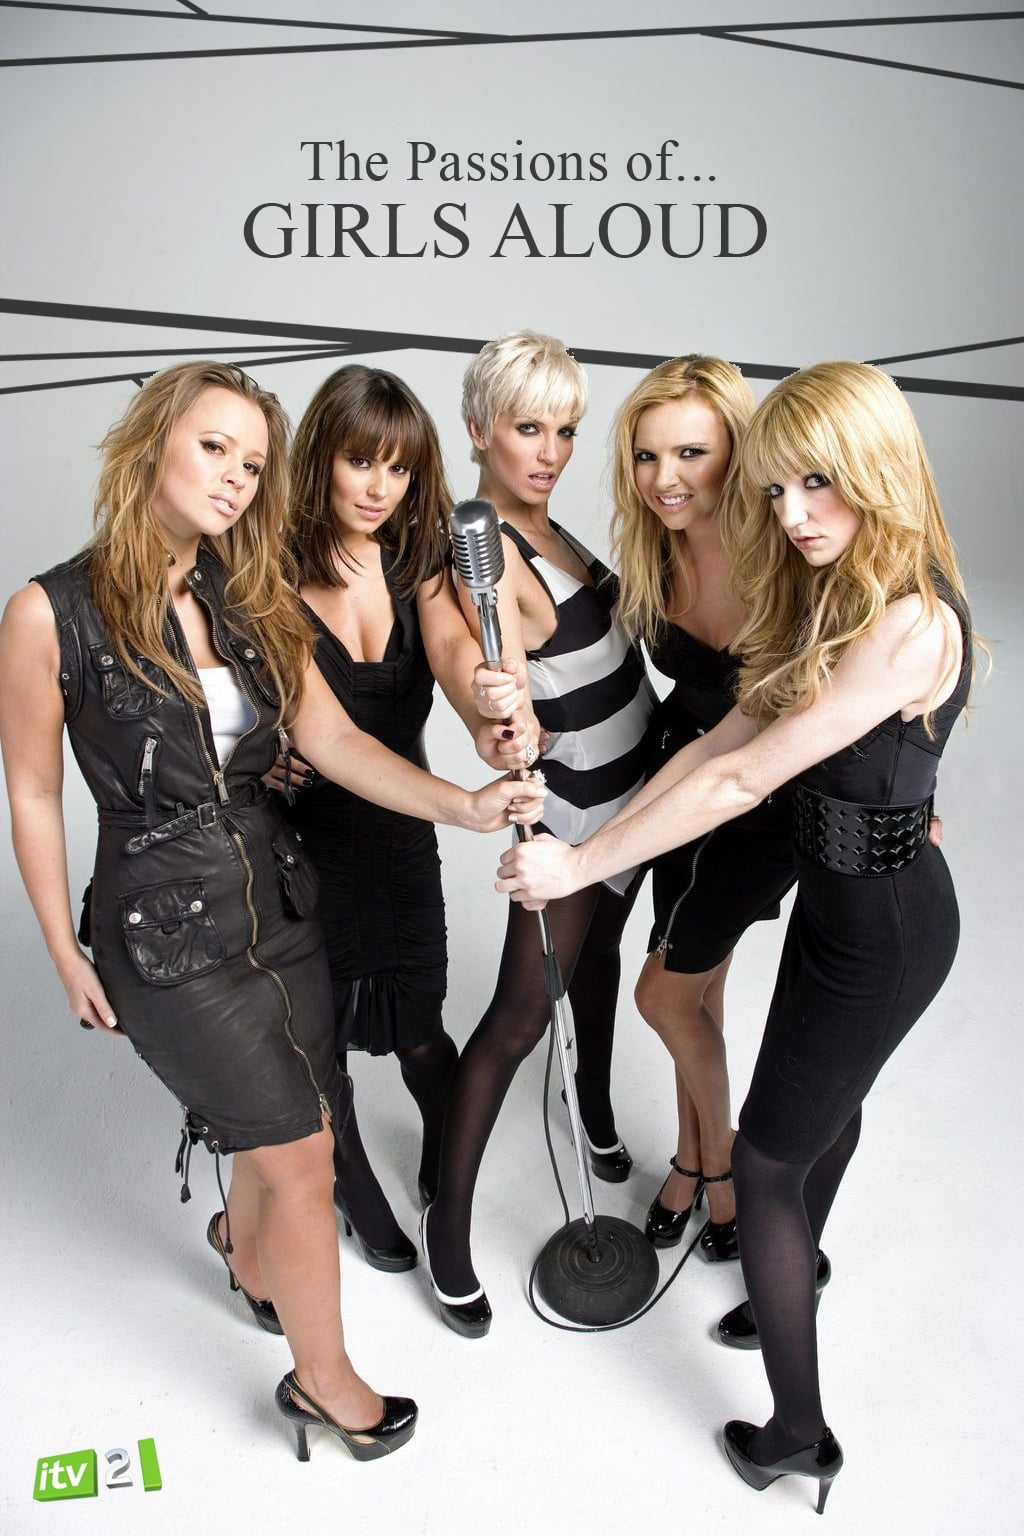 Passions of Girls Aloud